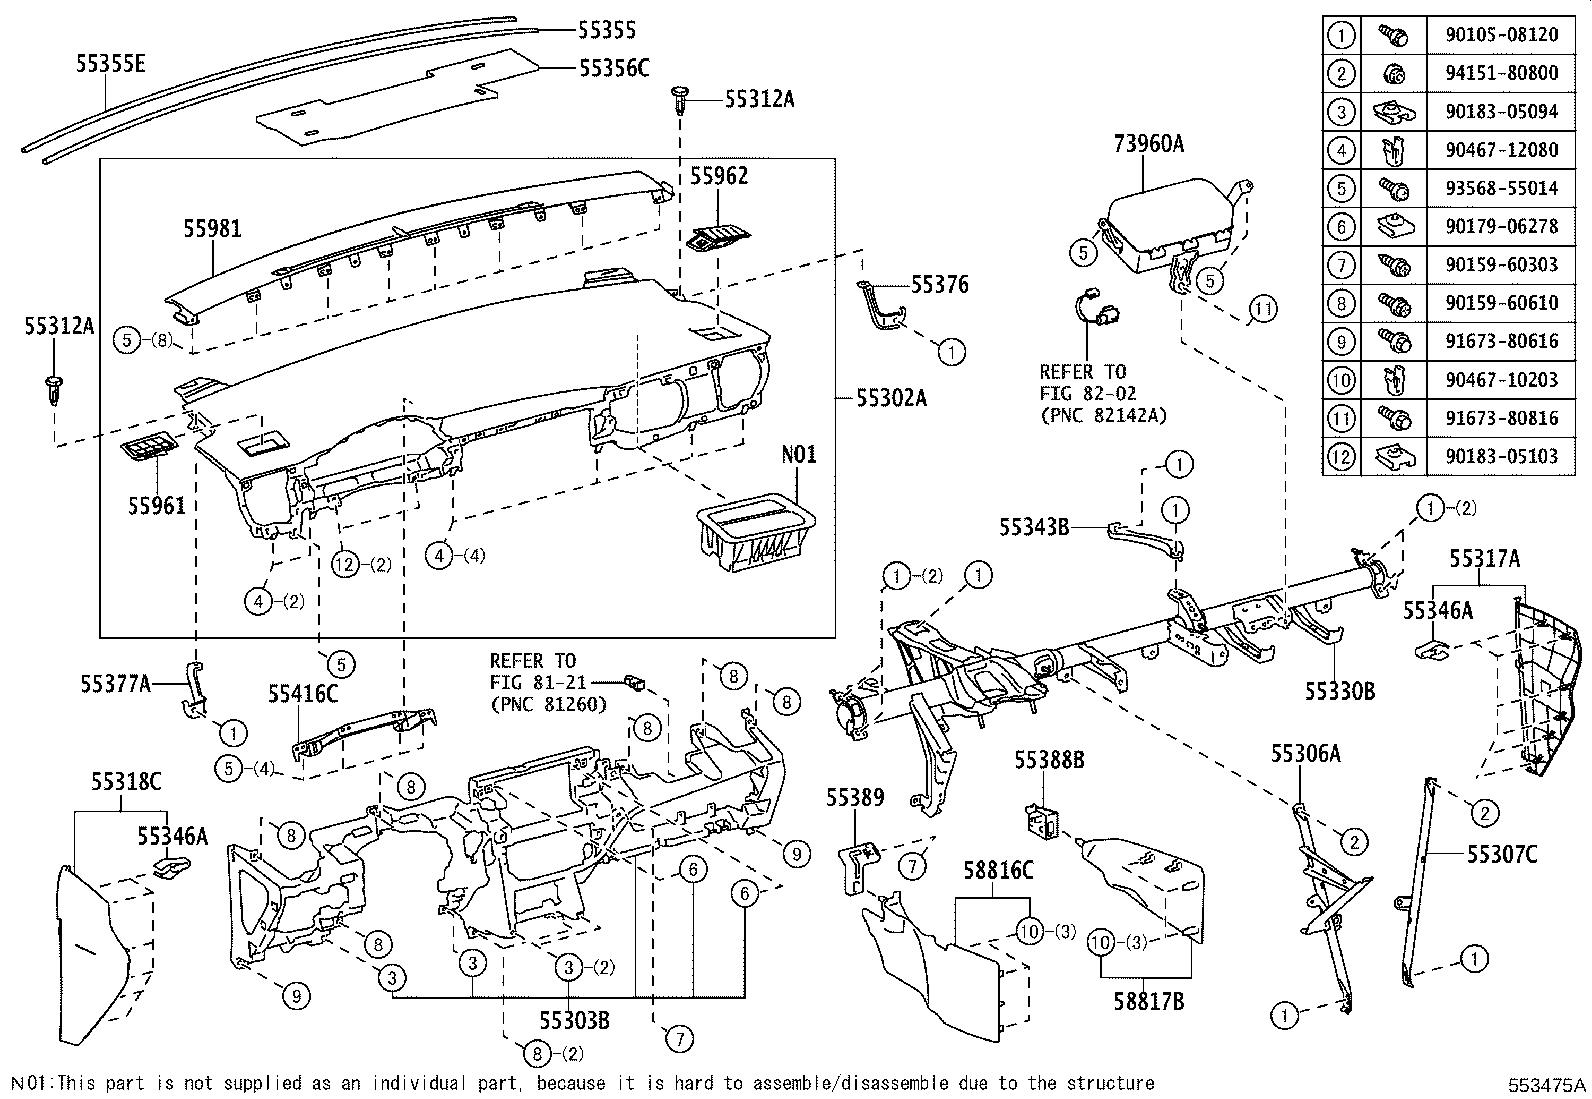 Diagram INSTRUMENT PANEL & GLOVE COMPARTMENT for your Toyota Corolla iM